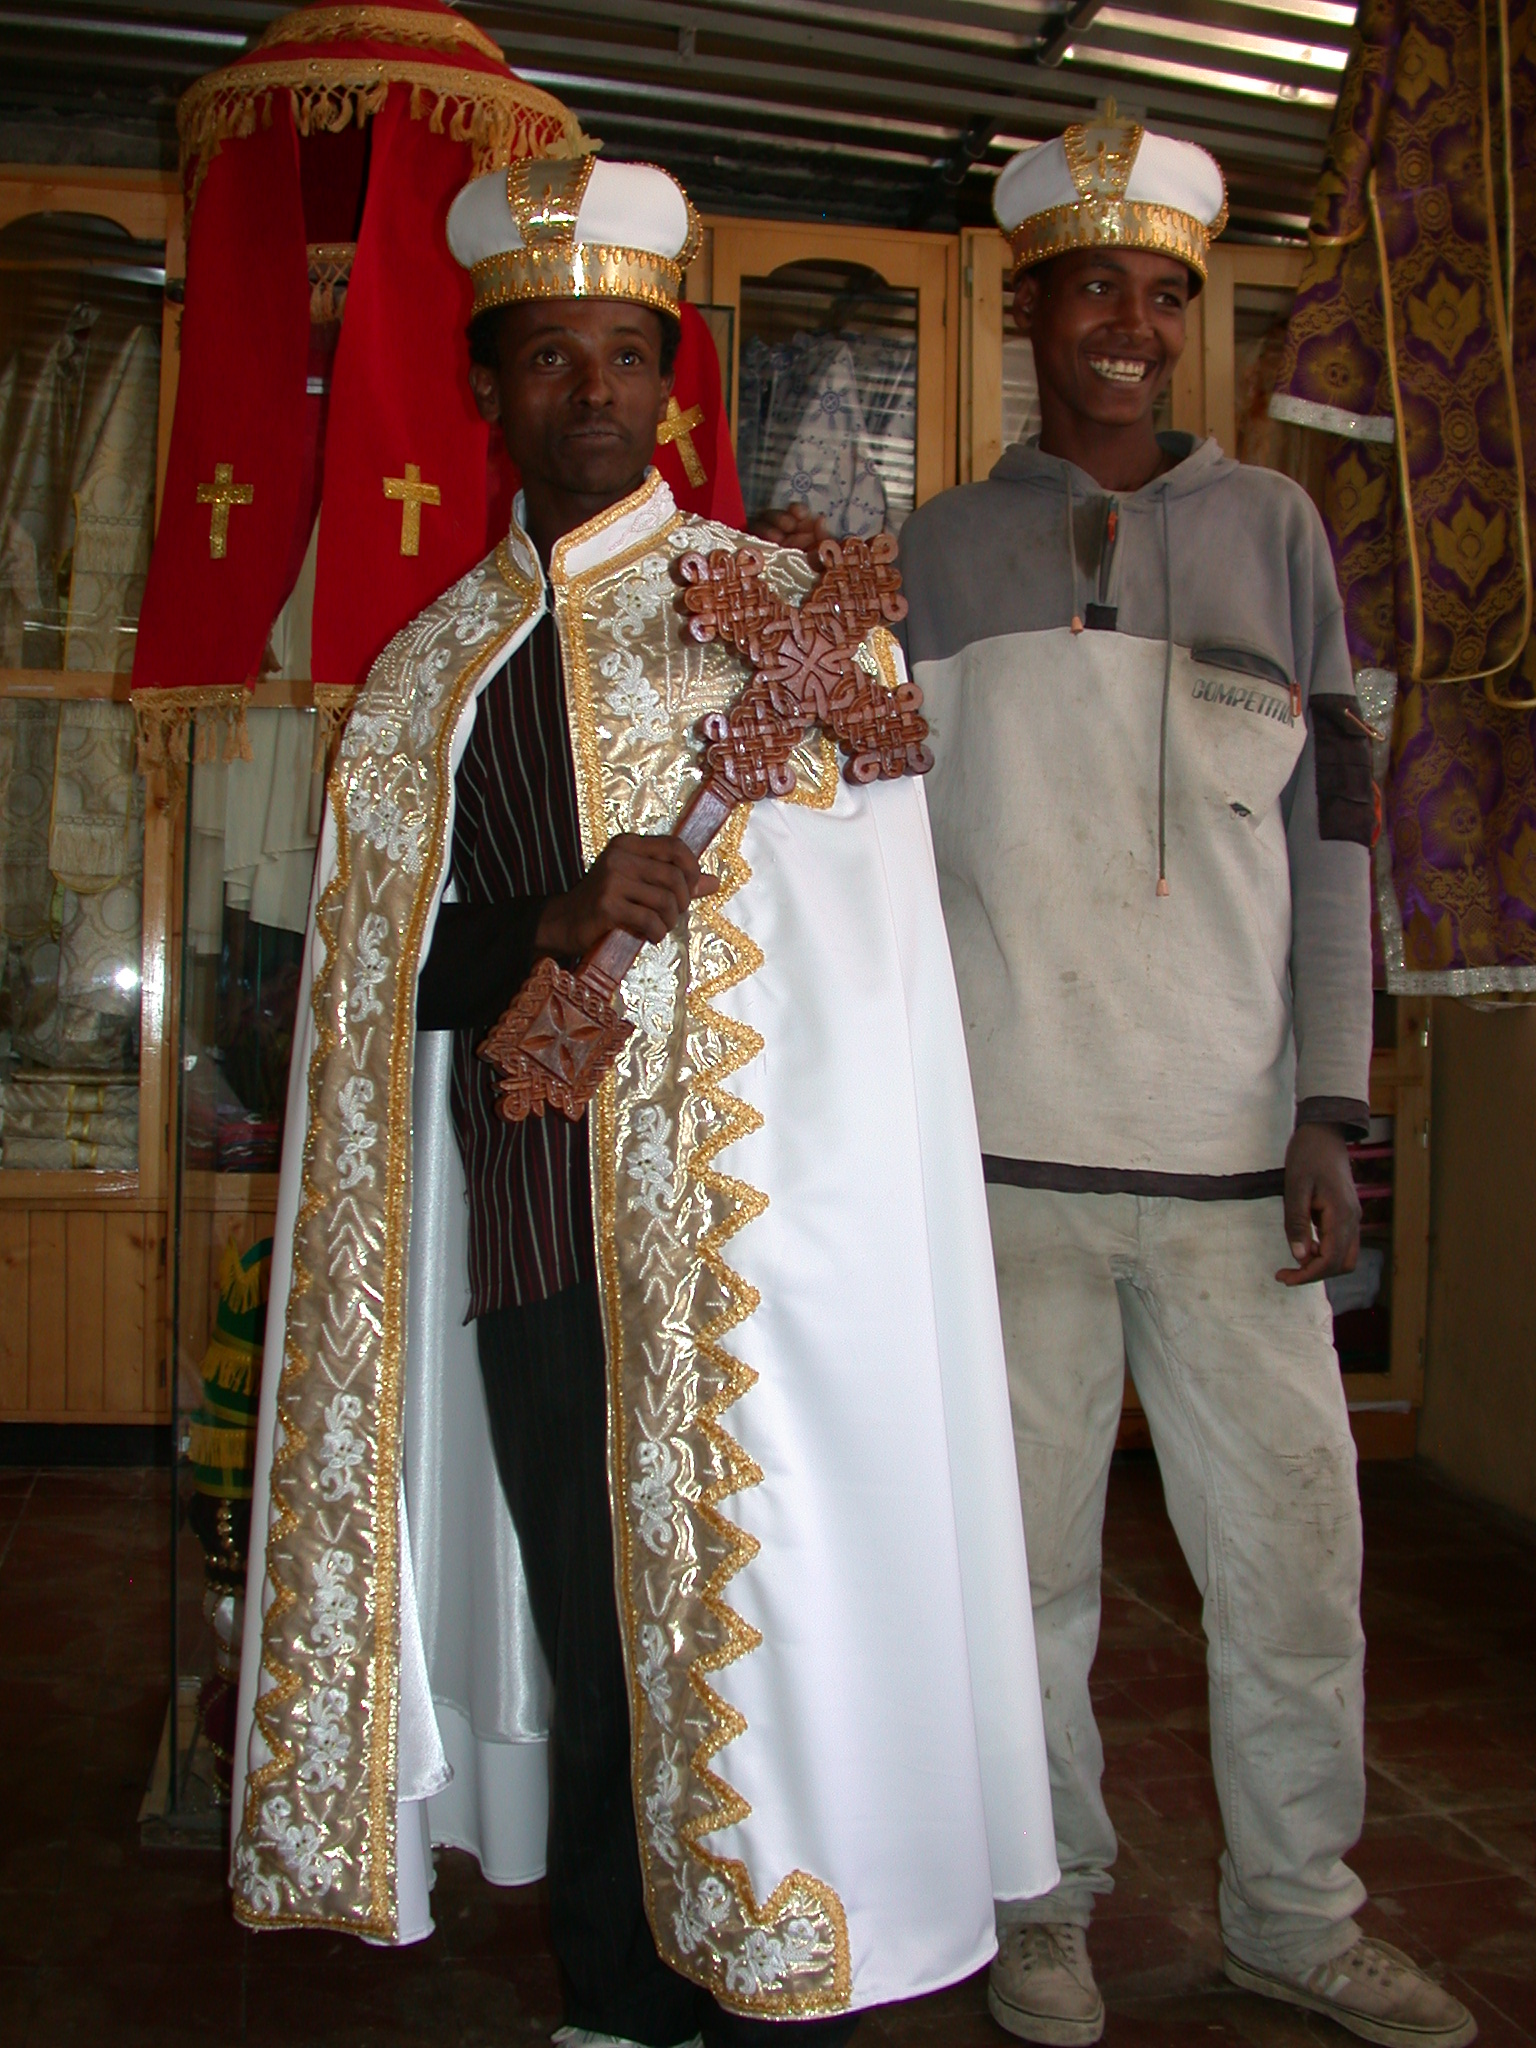 Shop Employee With Cross and Guy off Street in Wedding Gowns at Church Shop, Addis Ababa, Ethiopia